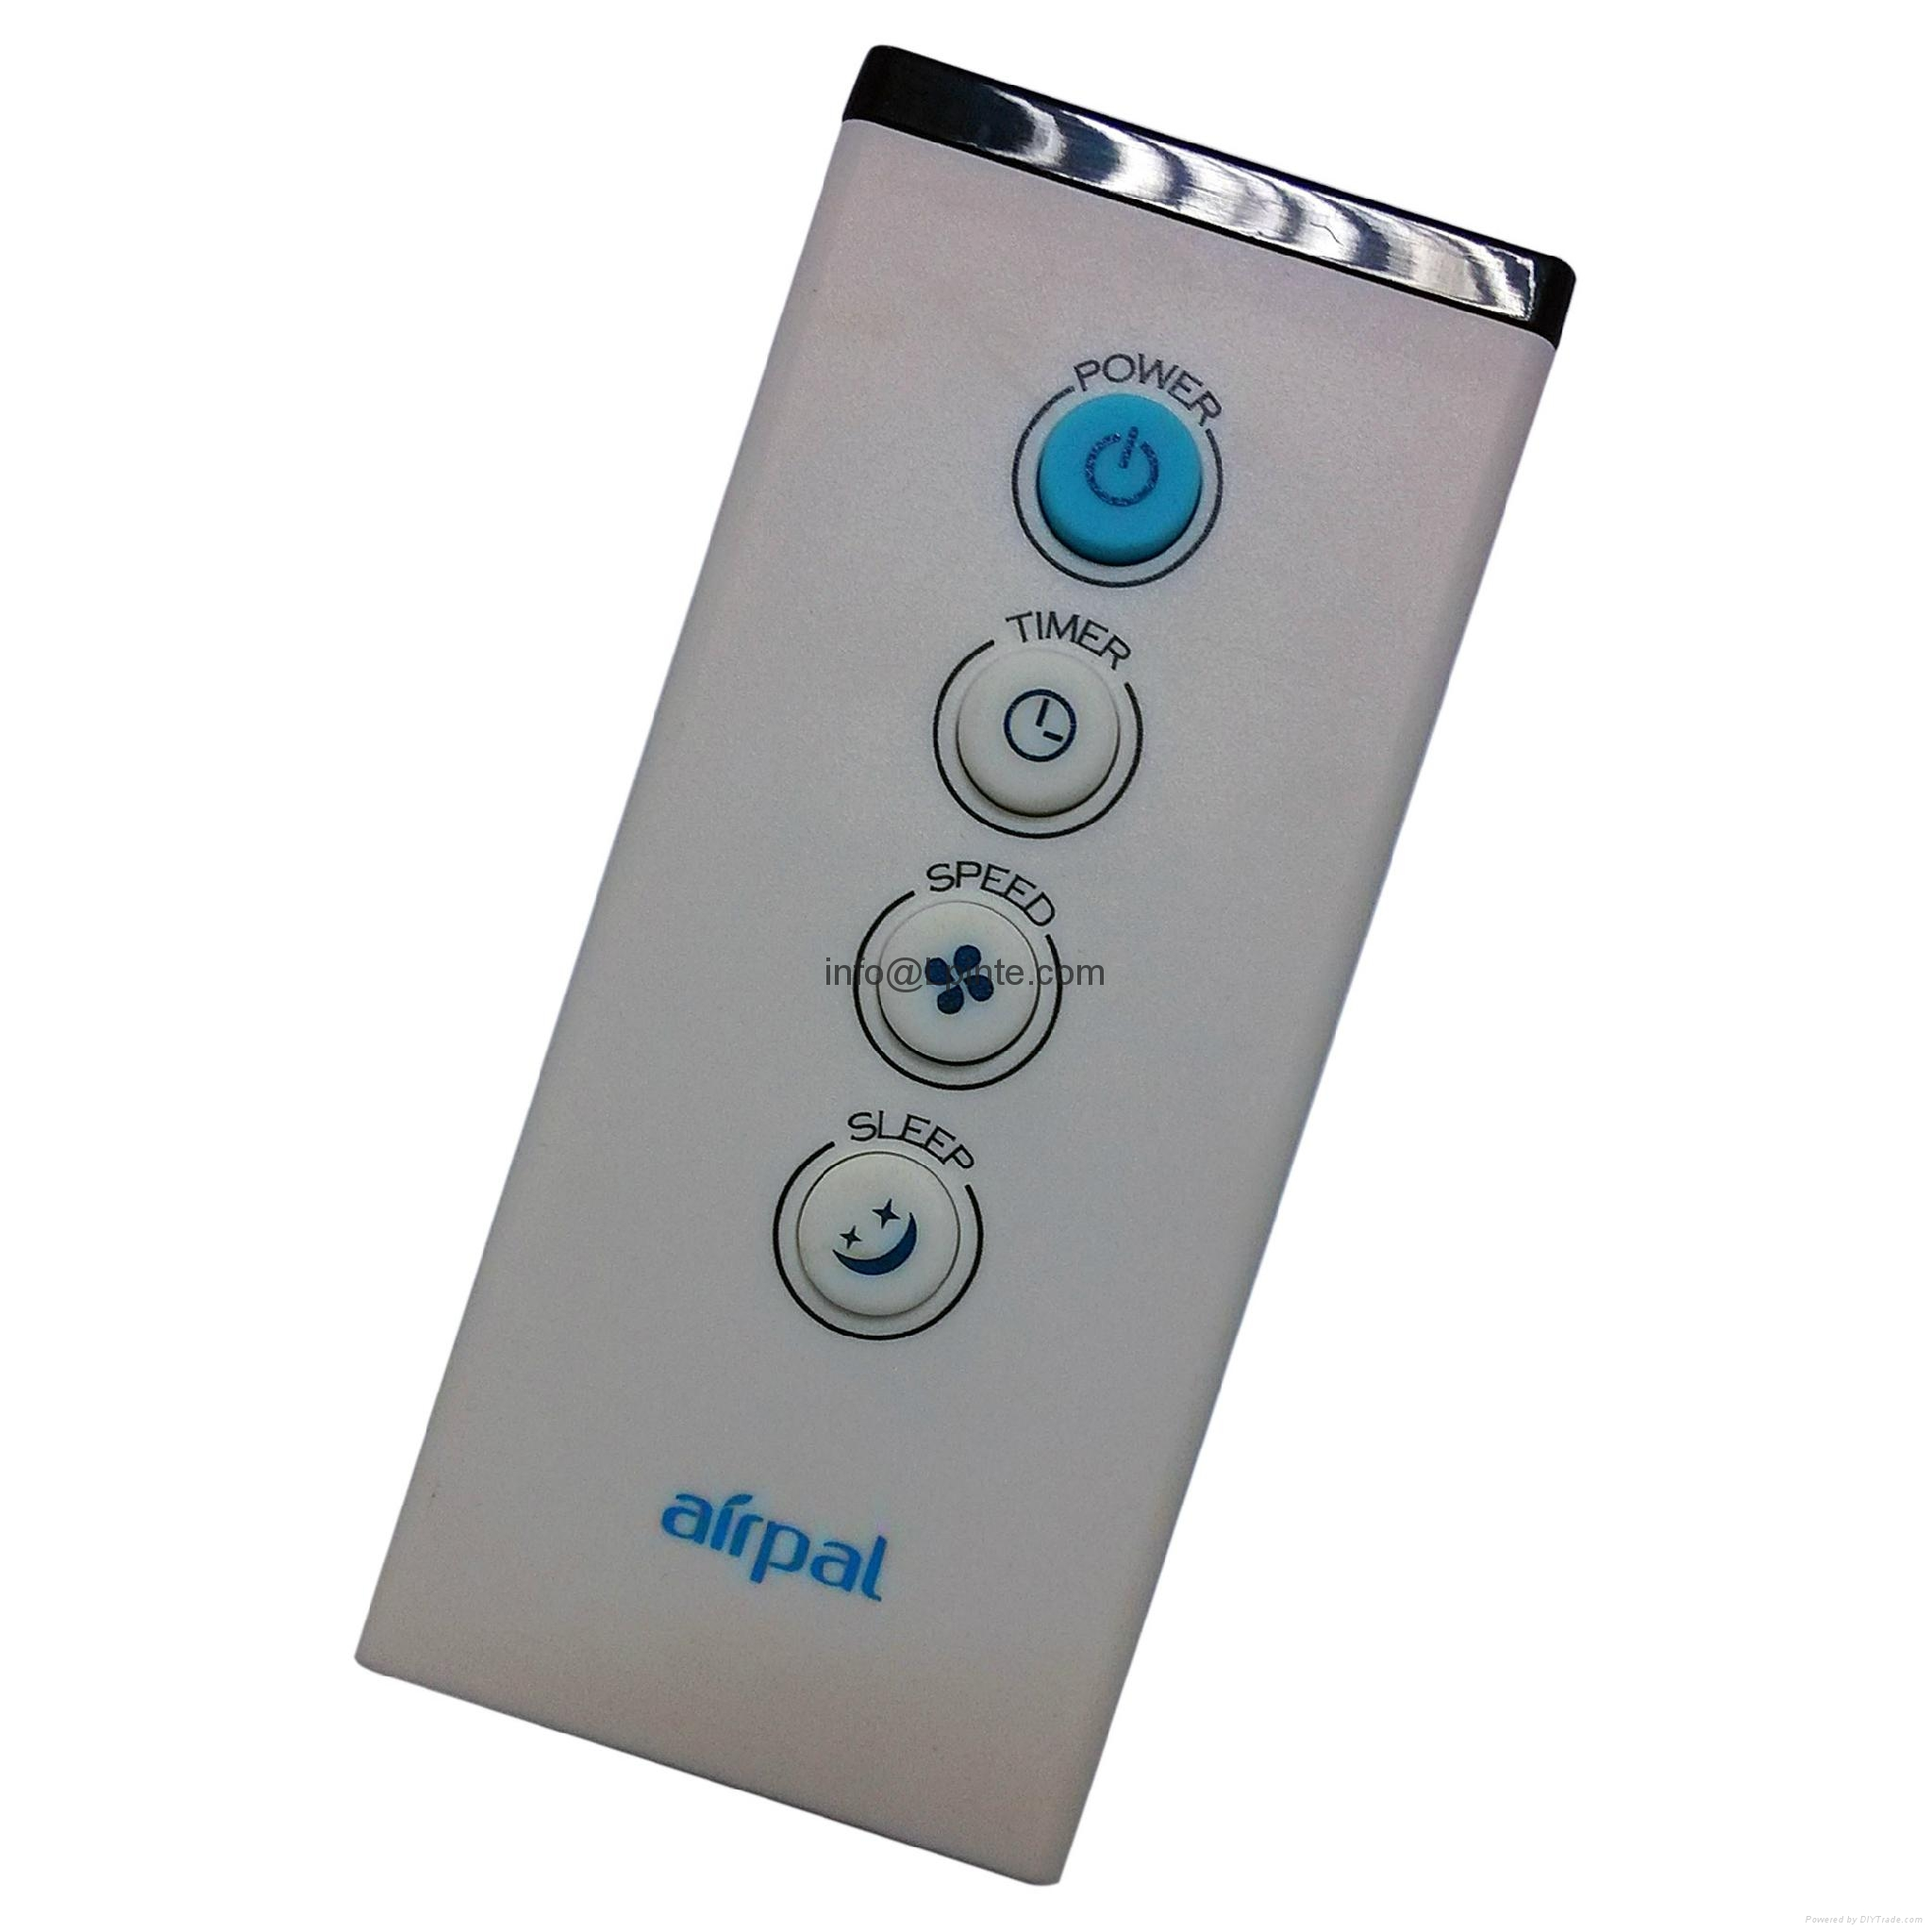 media remote controller wireless LPI-R04 tv remote control air purifier 1